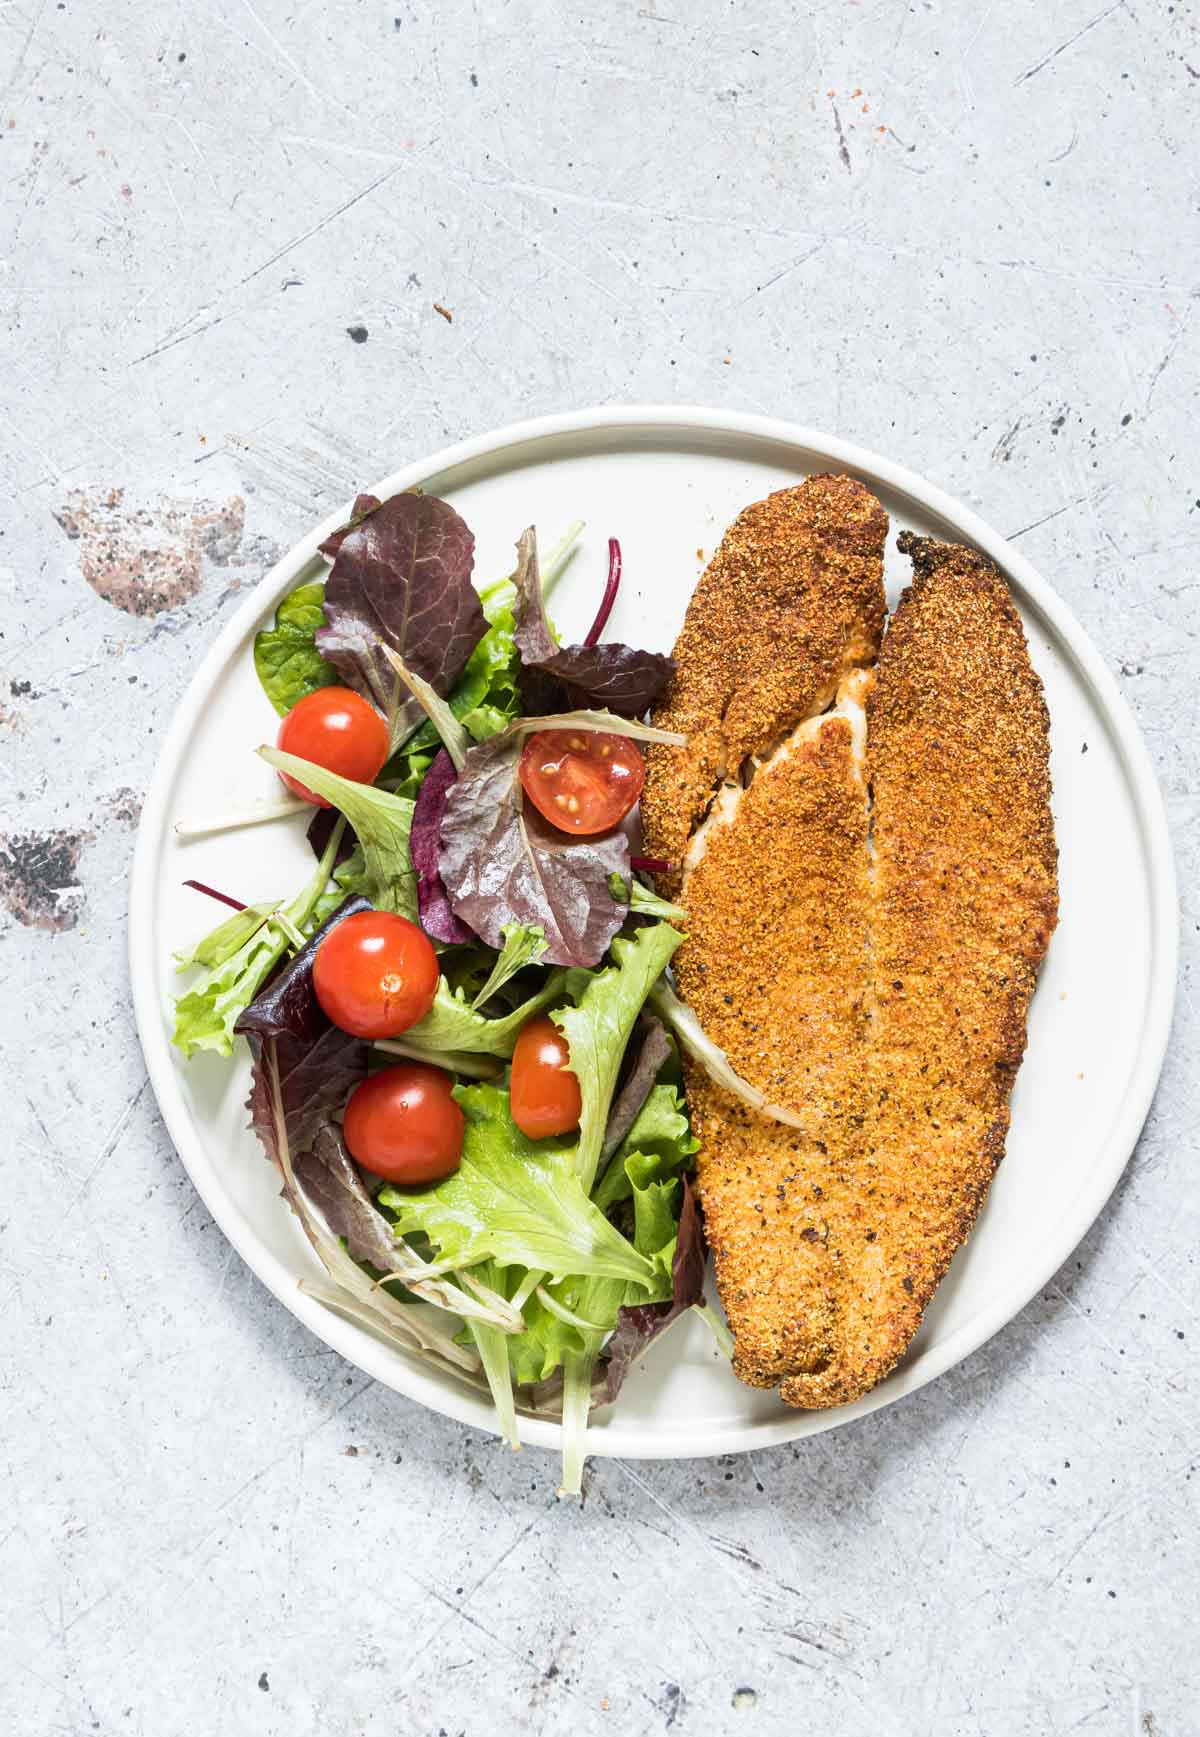 close up of an air fried fish on a plate with some salad